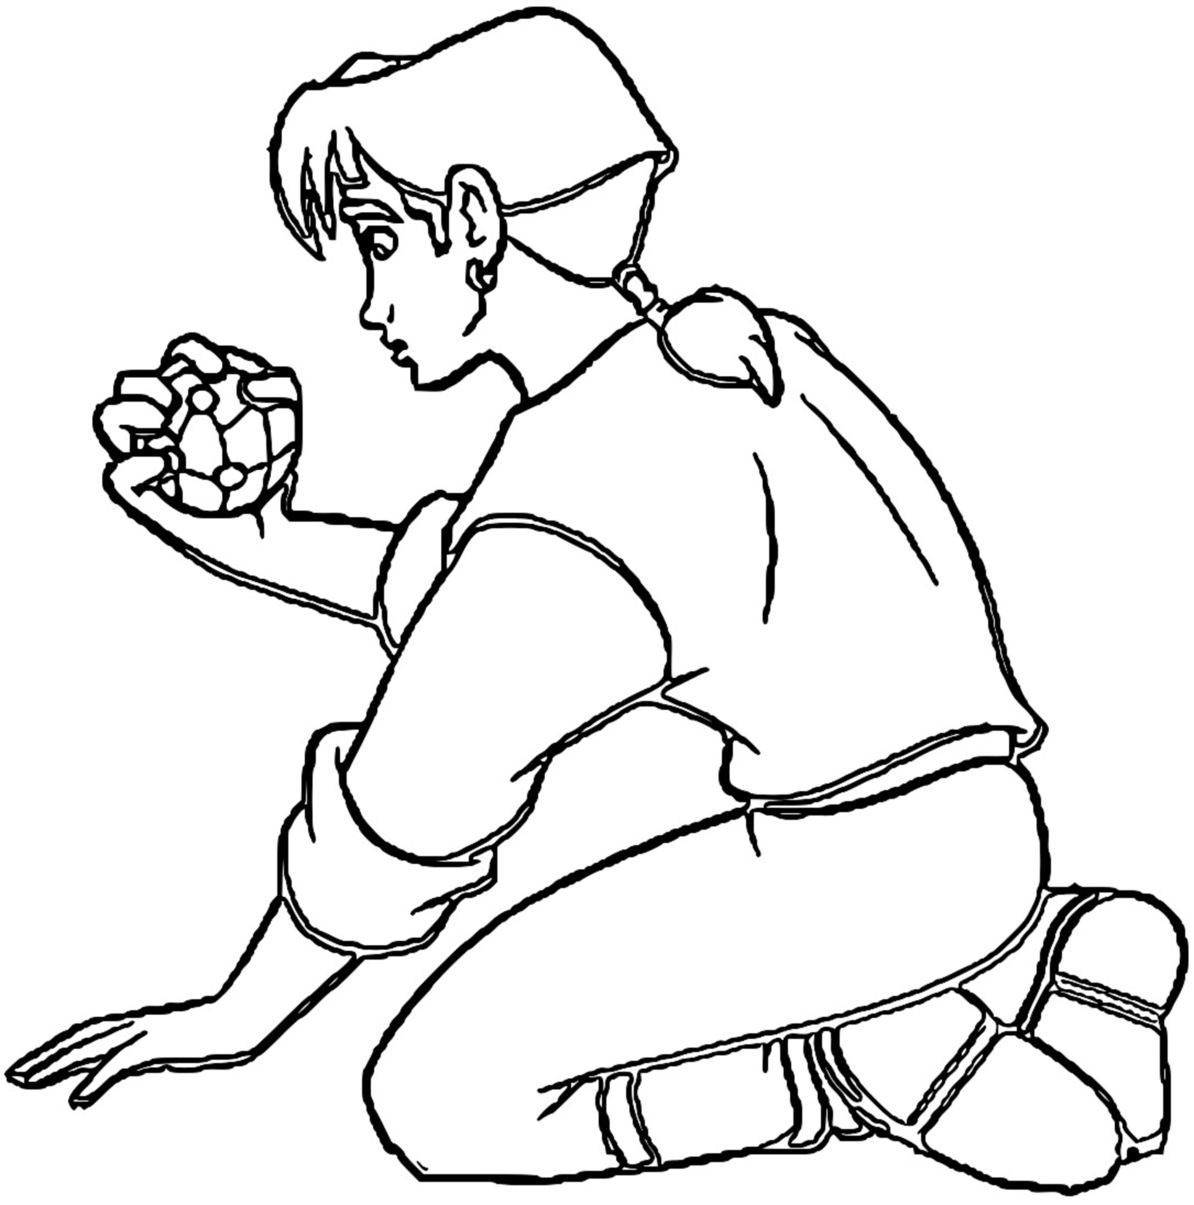 Treasure Planet pfg 36 Coloring Pages_Cartoonized